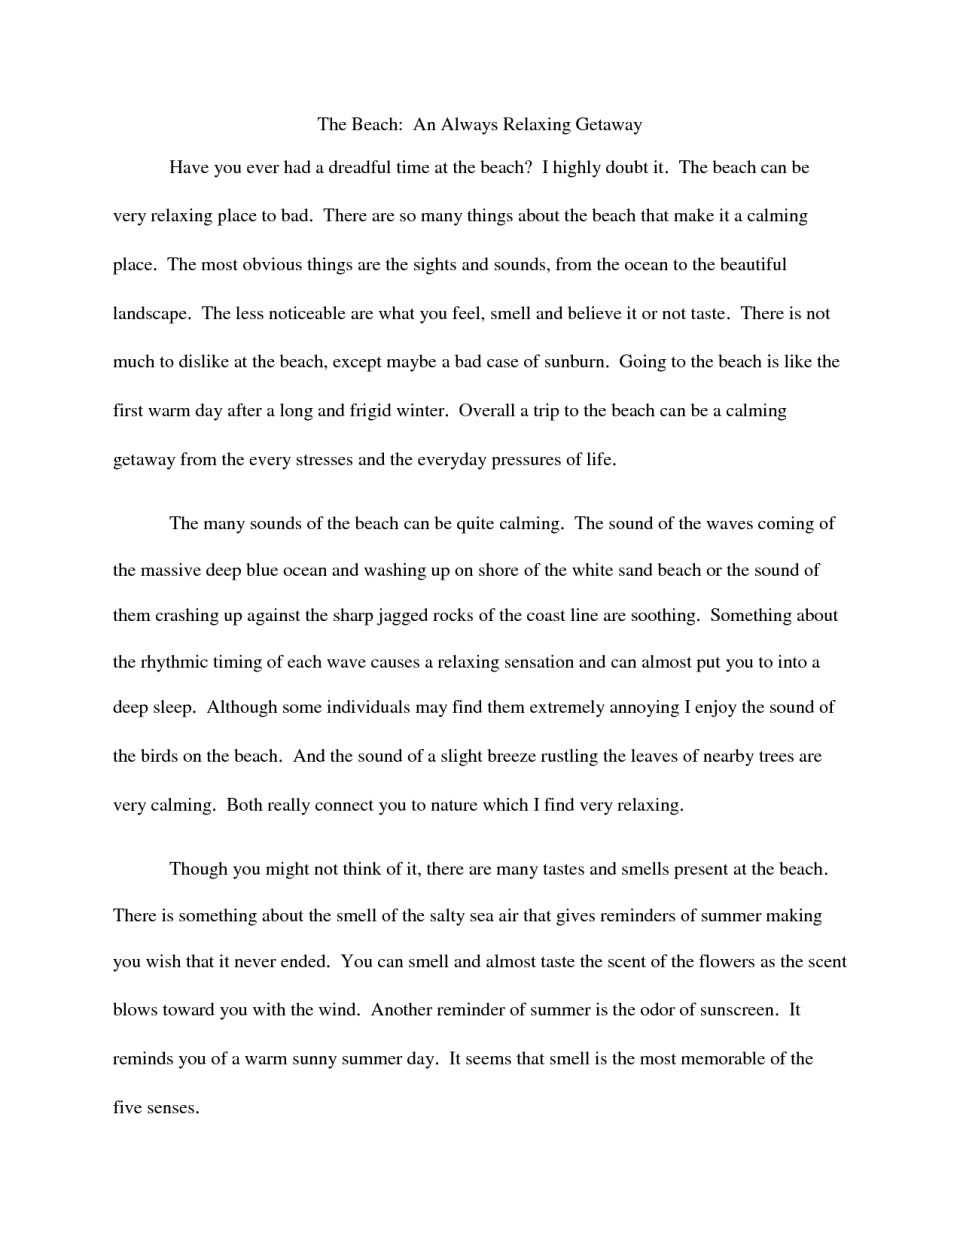 006 Essay Example Descriptive Beach Essays College That Stand Out Odvqltnc Short On The Sunset Paper Barefoot About Walk Vacation Narrative At Night Free Unbelievable Examples Pdf For Grade 7 Writing 960